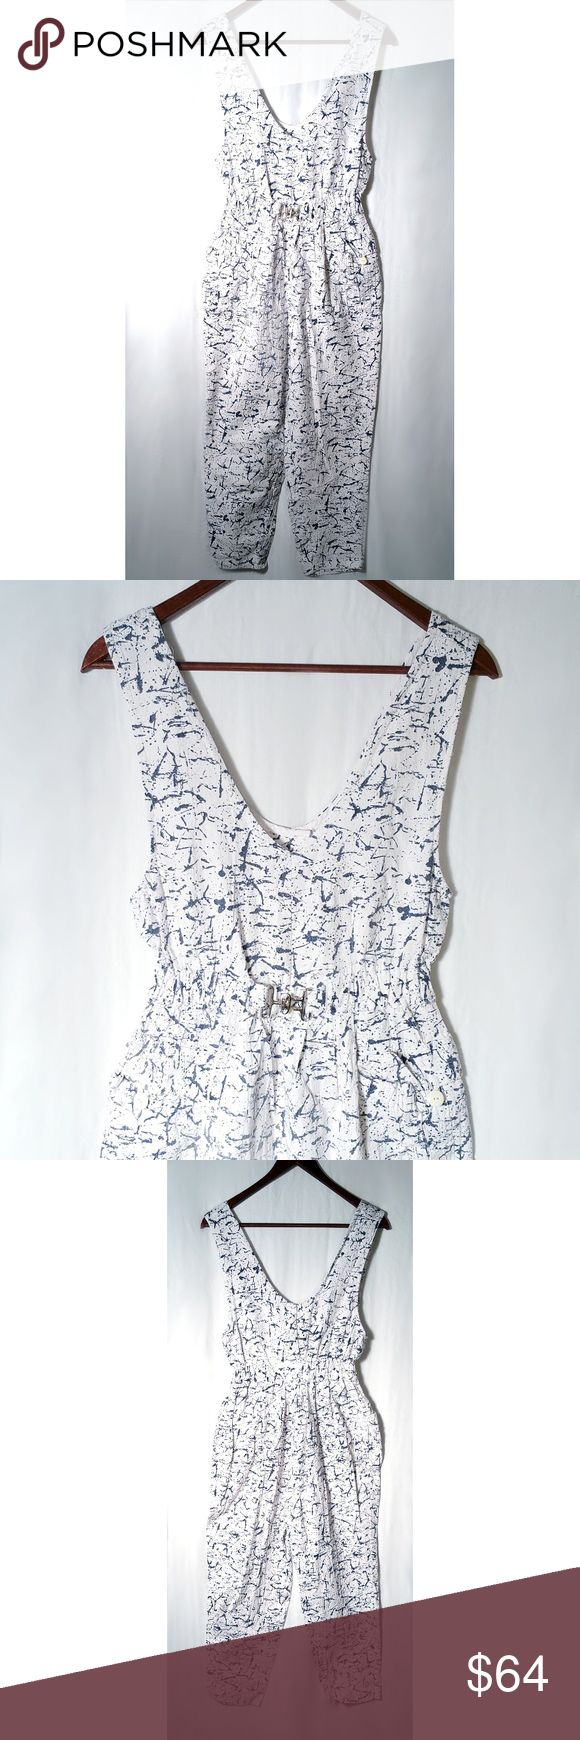 VTG 80s White Jumpsuit Blue Paint Splatter S/M AMAZING handmade vintage 80s sleeveless white jumper with elastic waist and metal buckle detail featuring all over blue paint splatter pattern!  There is not another one like this in the world!  Truly unique and comfy!  It also has several pockets!  No sizing tag but will fit like a S/M, please check measurements below.  Small snap closure at the back.  One small spot with light yellowing on one front buttoned pocket, see photos.  Measuremts…